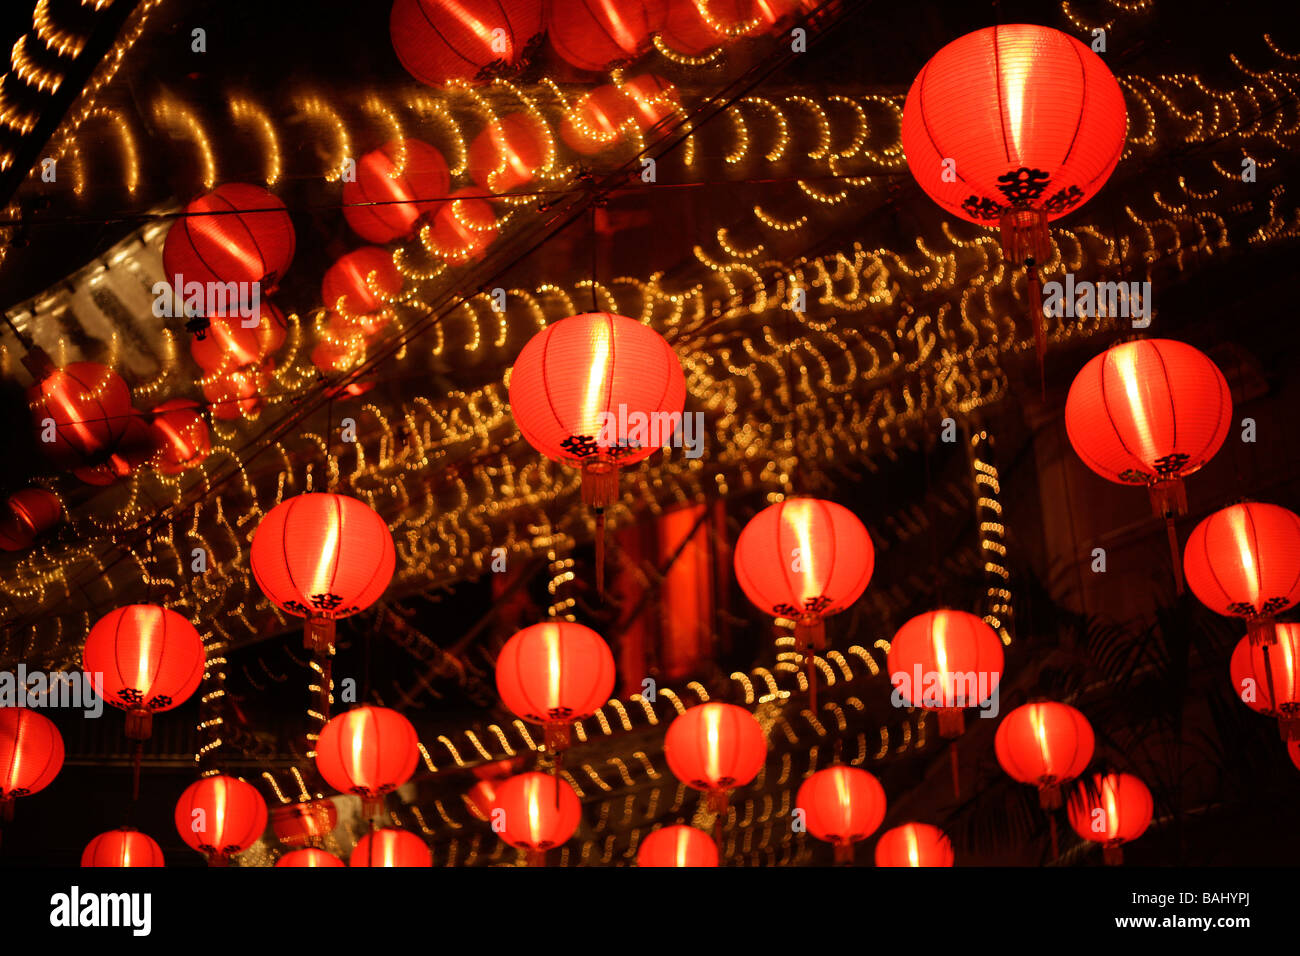 glowing red light of chinese new year lanterns in Singapore Asia - Stock Image